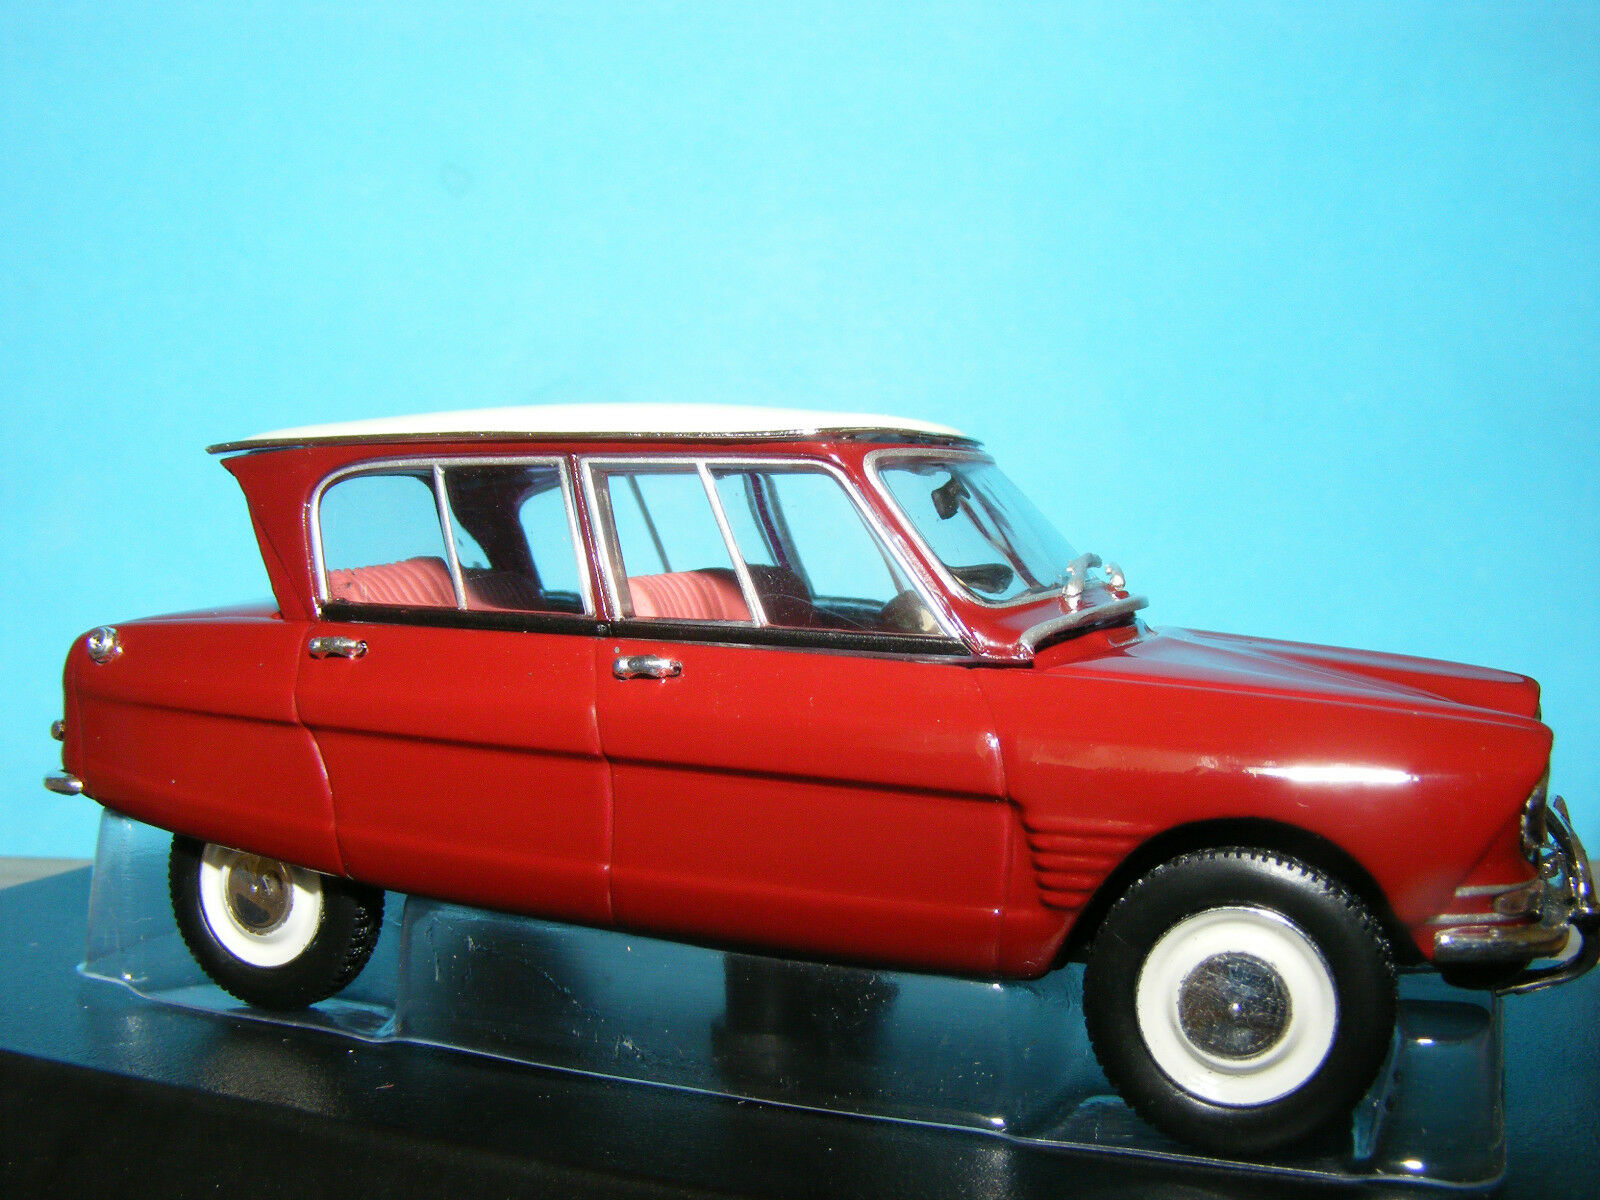 Citroen Ami 6 4 door sedan  red  White roof  NEW RELEASE by NOREV 1 43 NLA